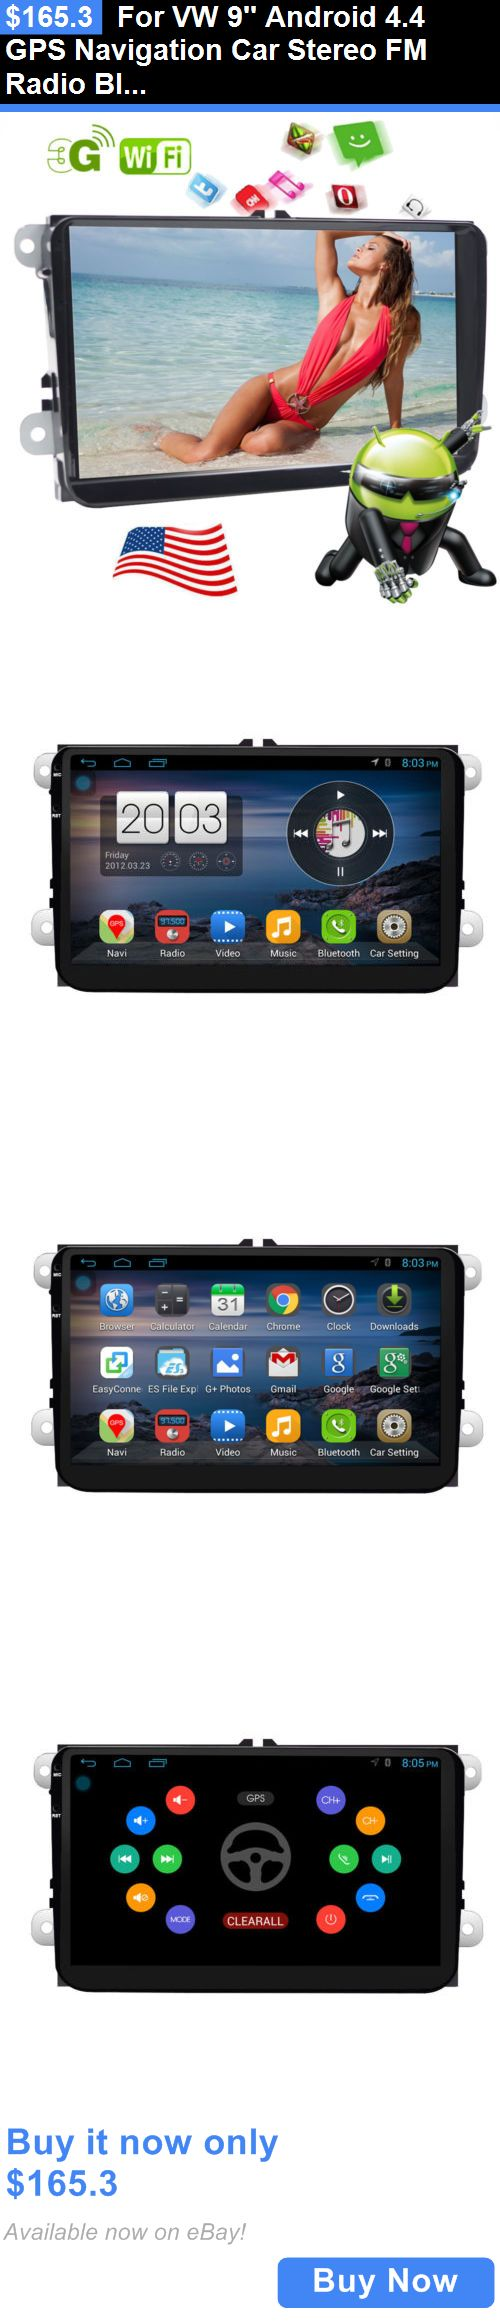 Vehicle Electronics And GPS: For Vw 9 Android 4.4 Gps Navigation Car Stereo Fm Radio Bluetooth Wifi Bora B5 BUY IT NOW ONLY: $165.3